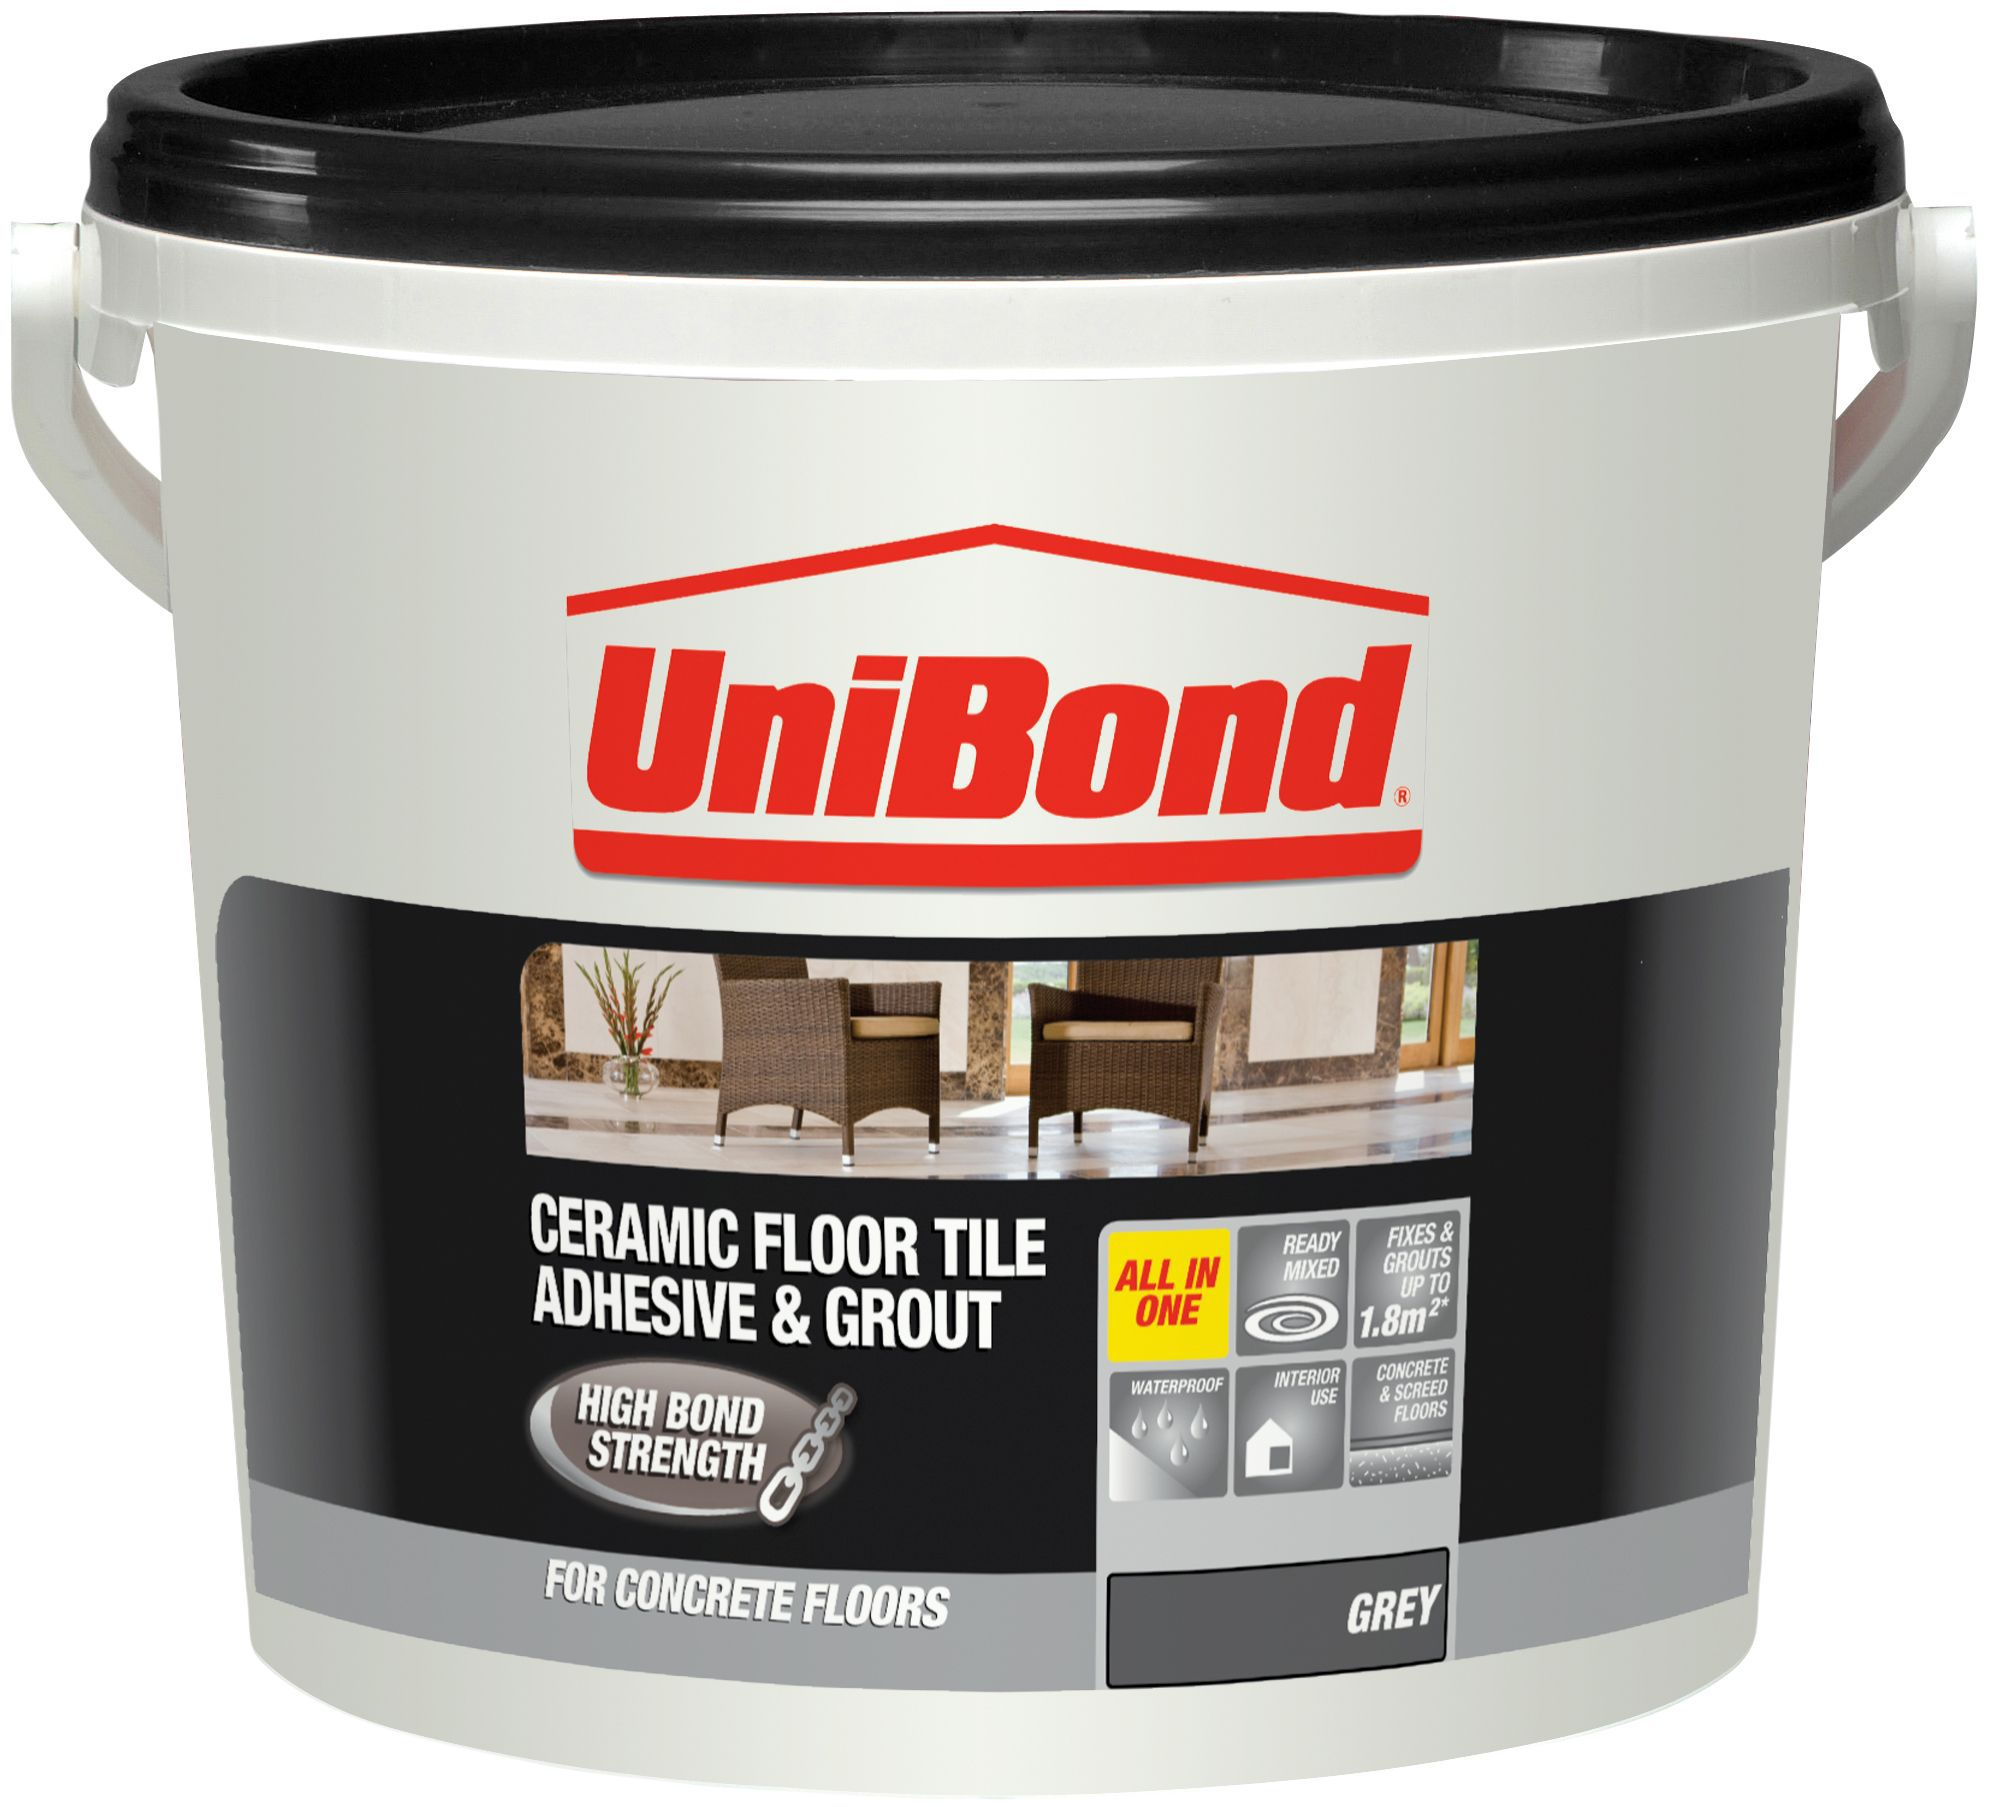 ideas for lights on a outdoor garage - Unibond Ready to Use Floor Tile Adhesive & Grout Grey 7